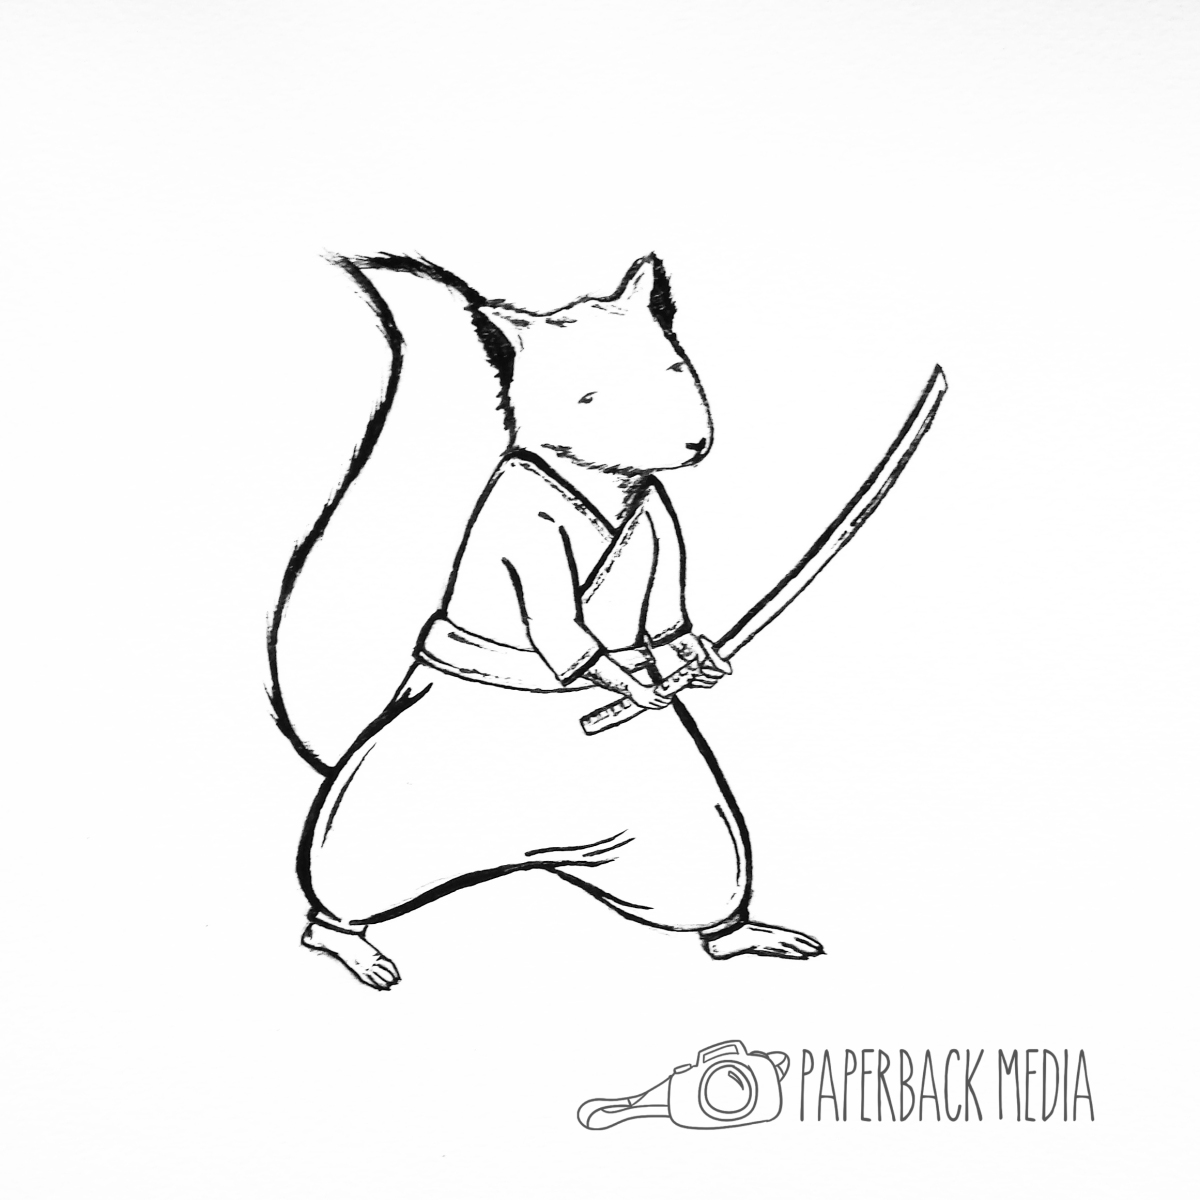 Drawn samurai squirrel Samurai Paperback  Media Squirrel